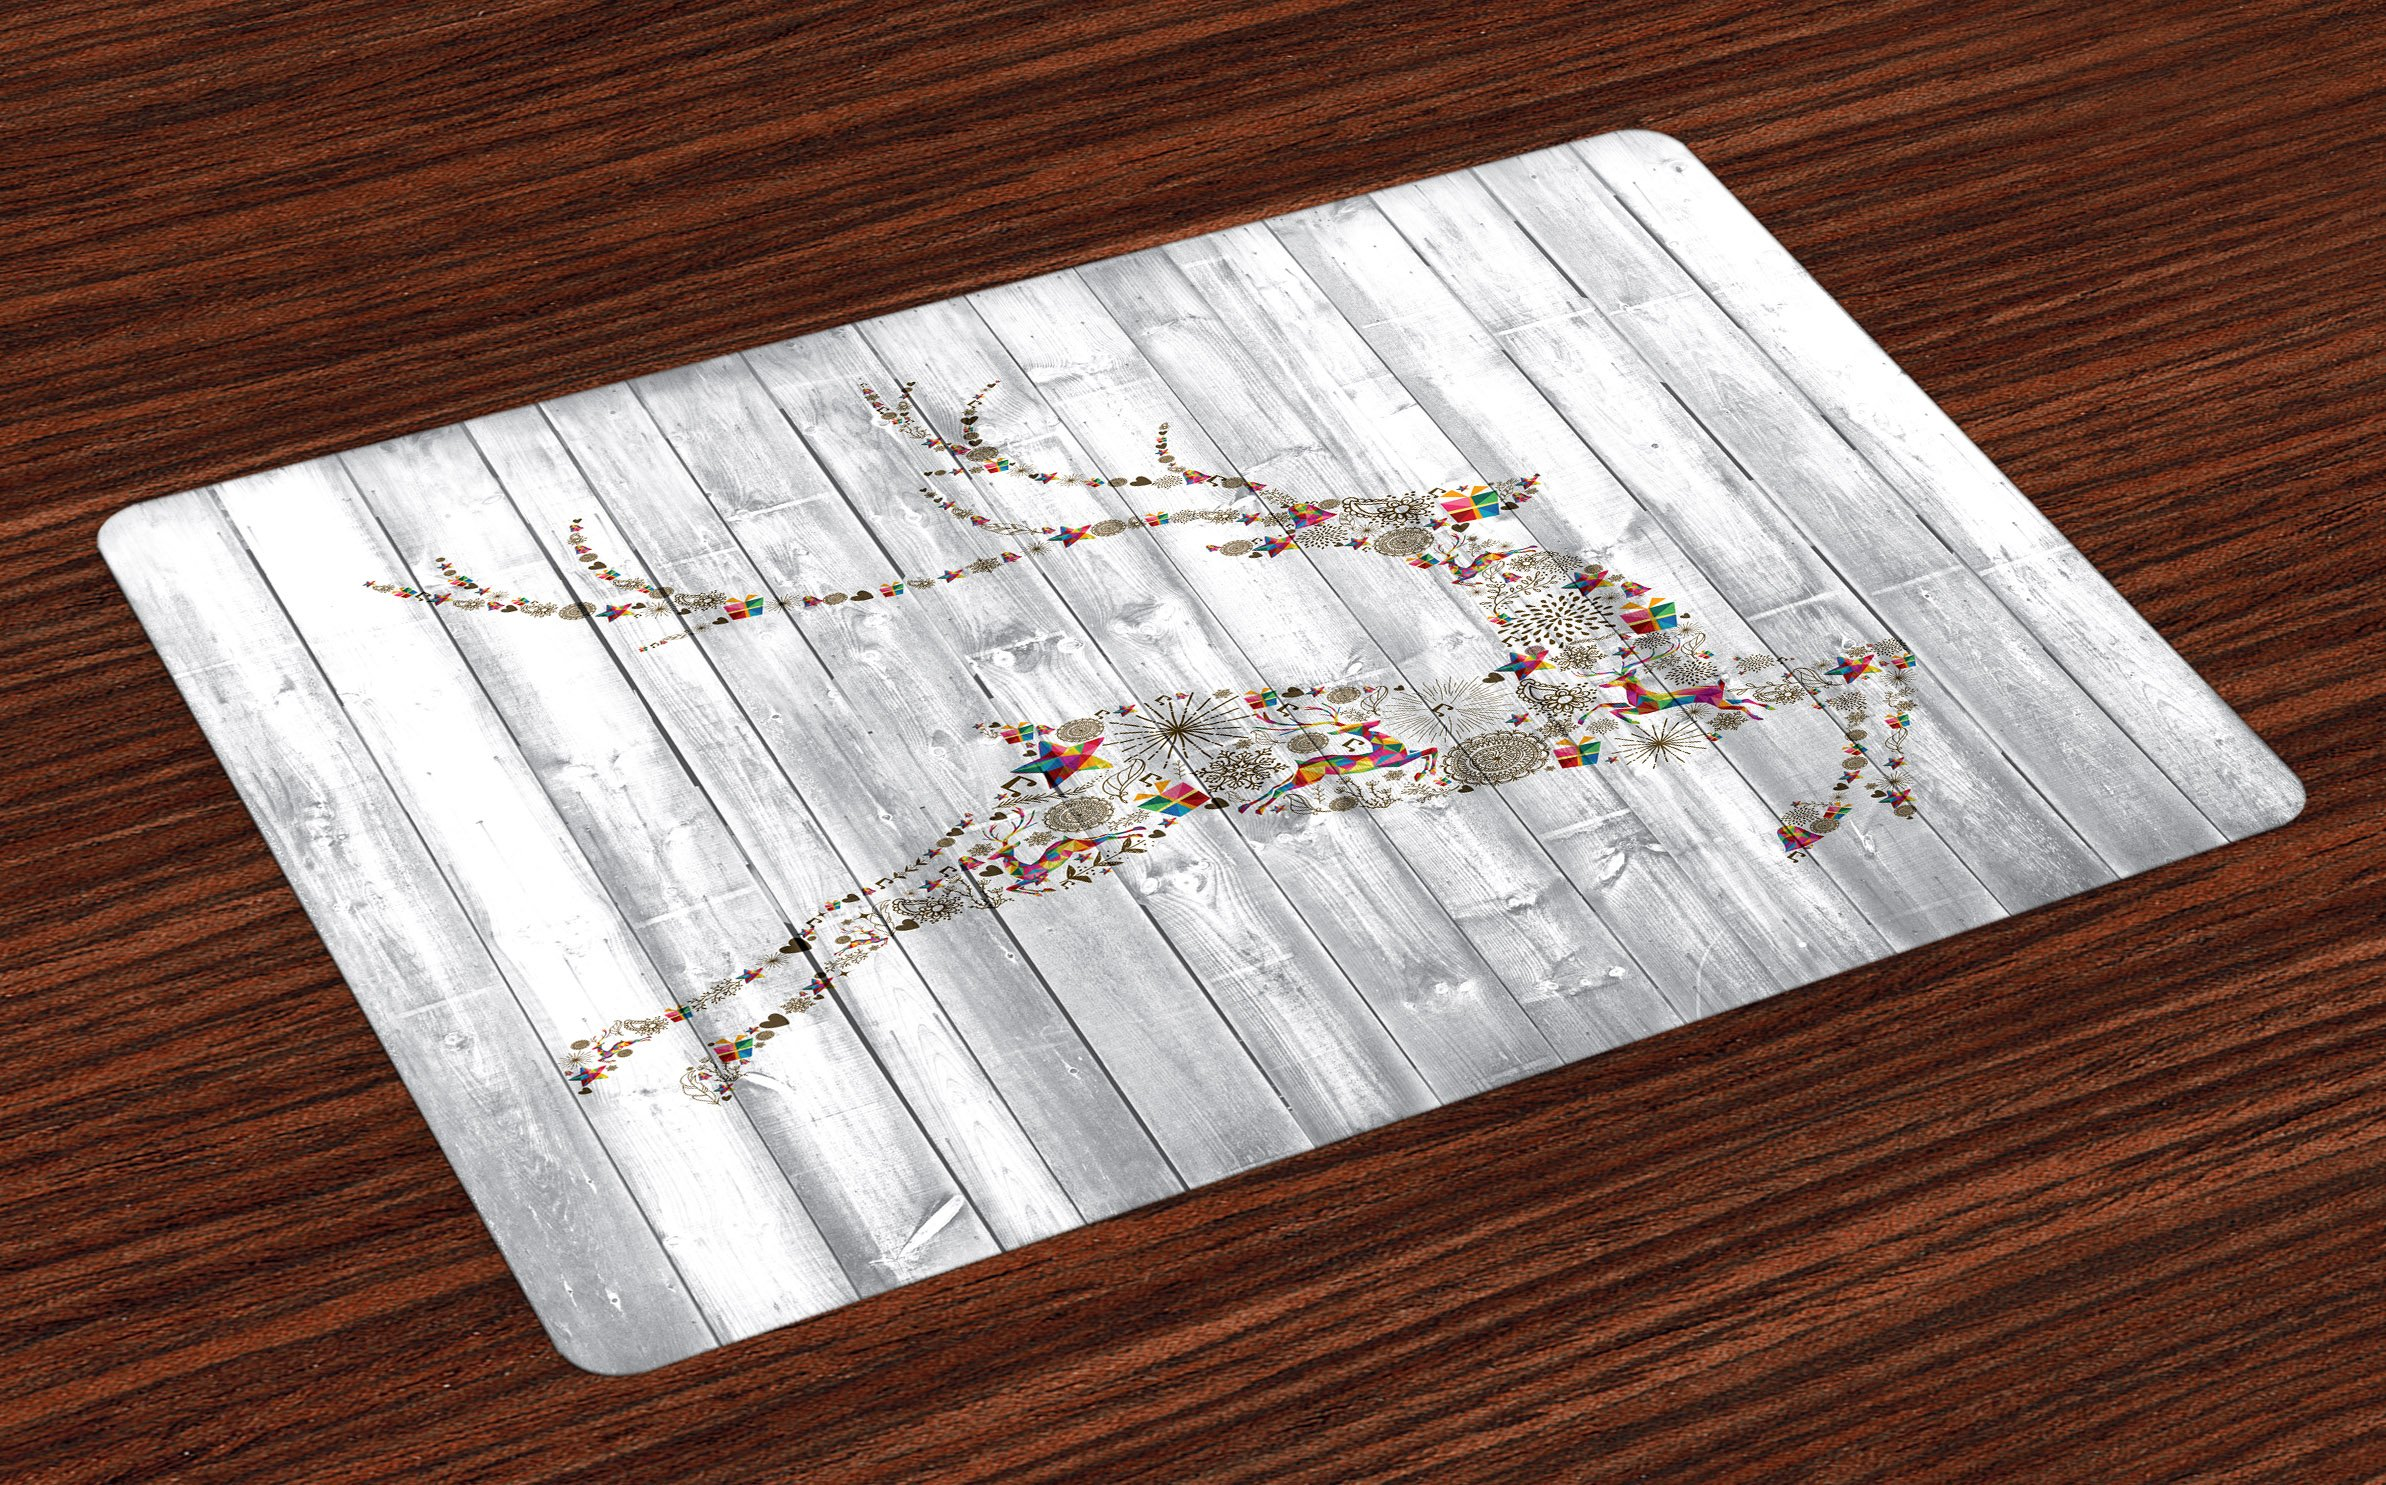 Ambesonne Deer Place Mats Set of 4, Colorful Animal Silhouette with Various Artistic Christmas Elements Wooden Planks, Washable Fabric Placemats for Dining Room Kitchen Table Decor, Grey Multicolor